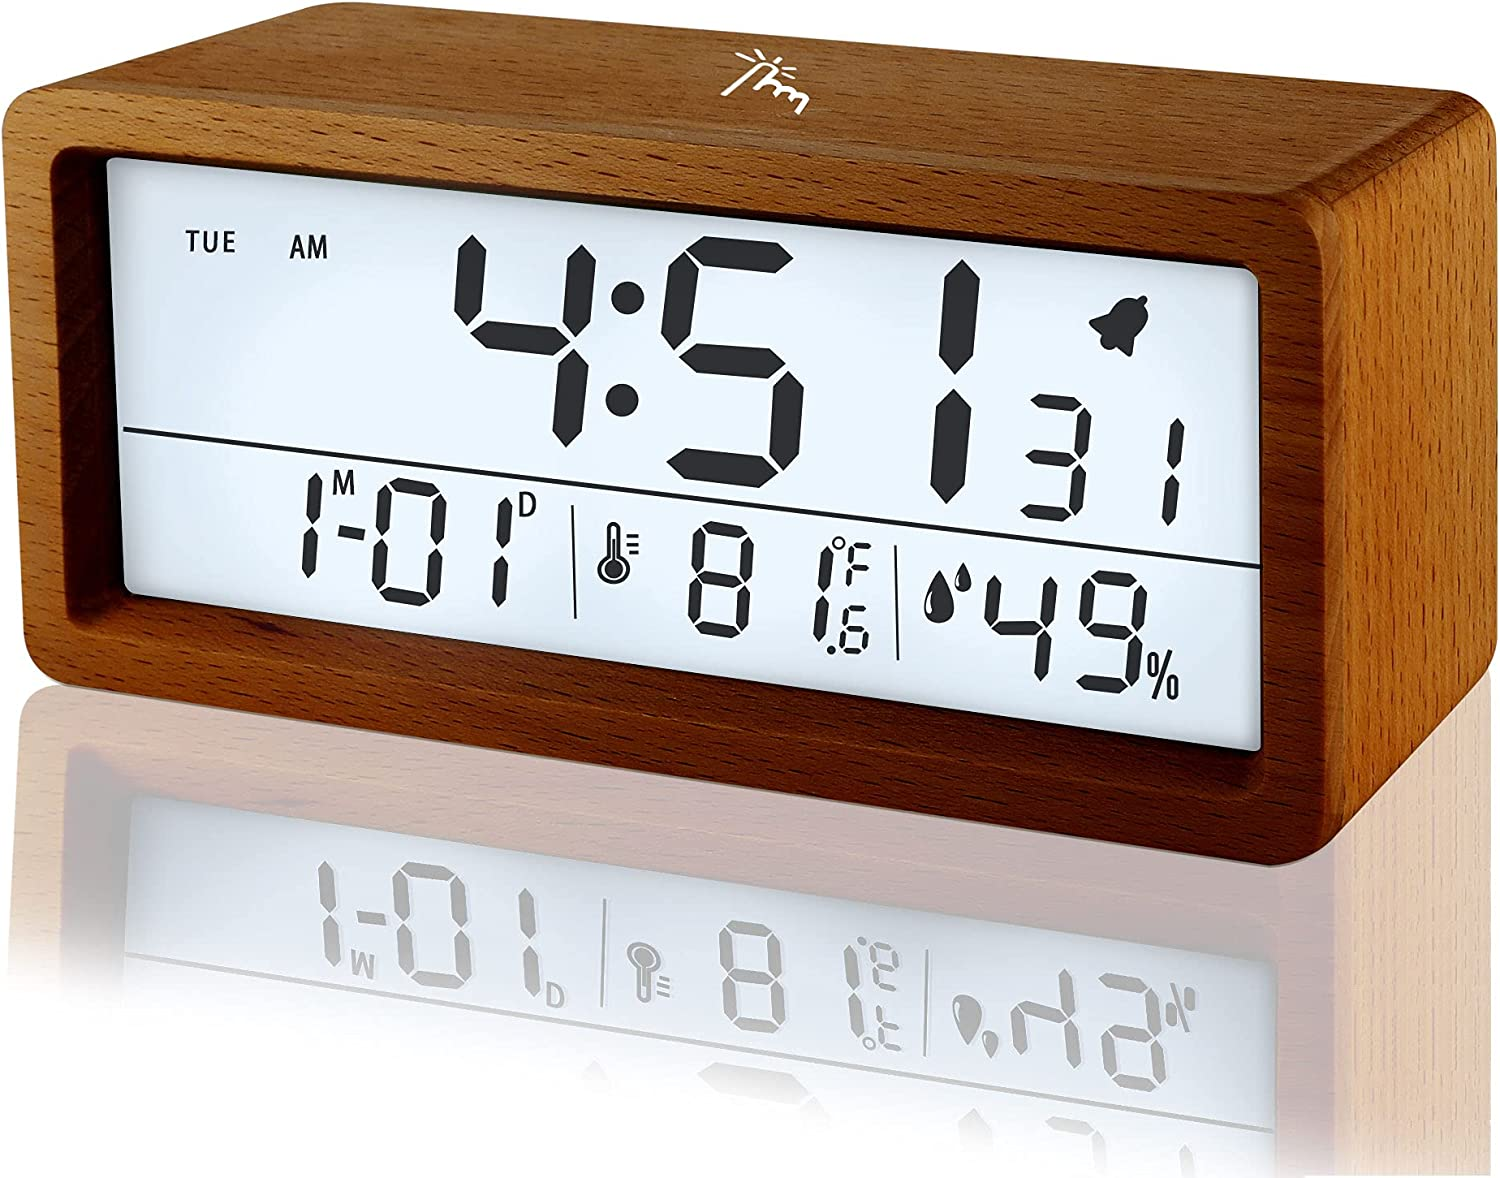 Digital Free Shipping New Alarm Many popular brands Clock Bedroom for Da Time Teens Seniors with